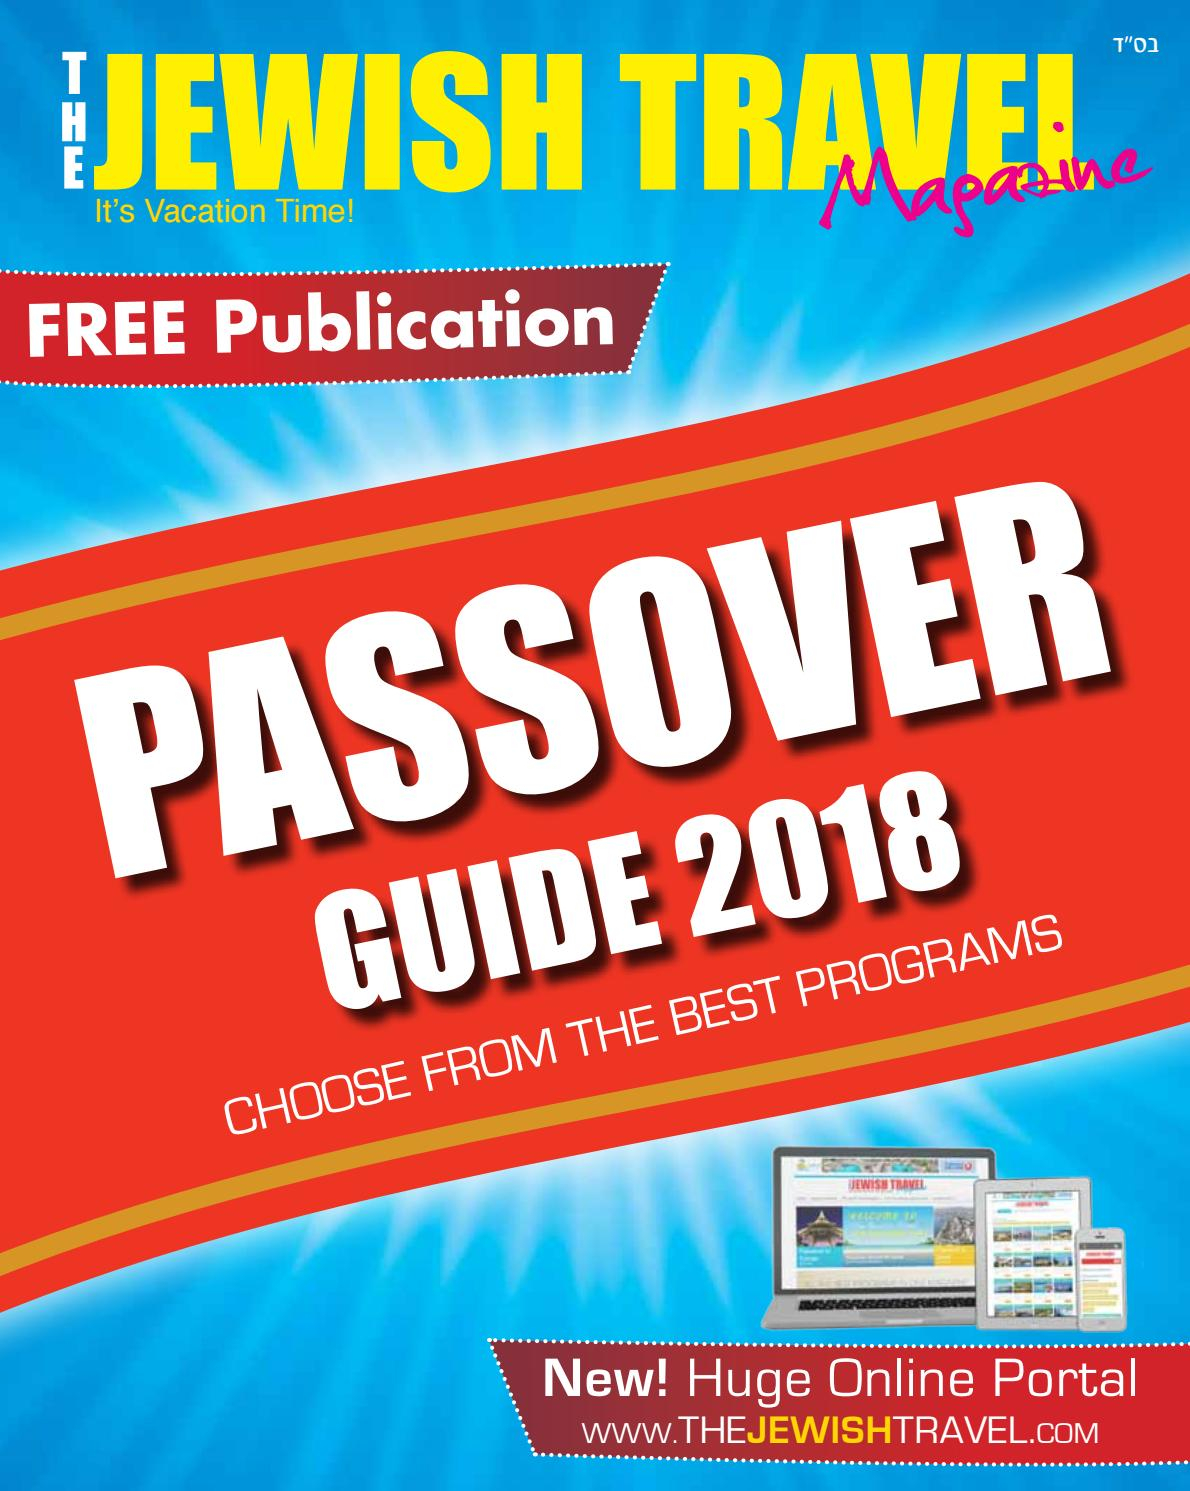 The Jewish Travel - Passover Guide 2018 by Travel